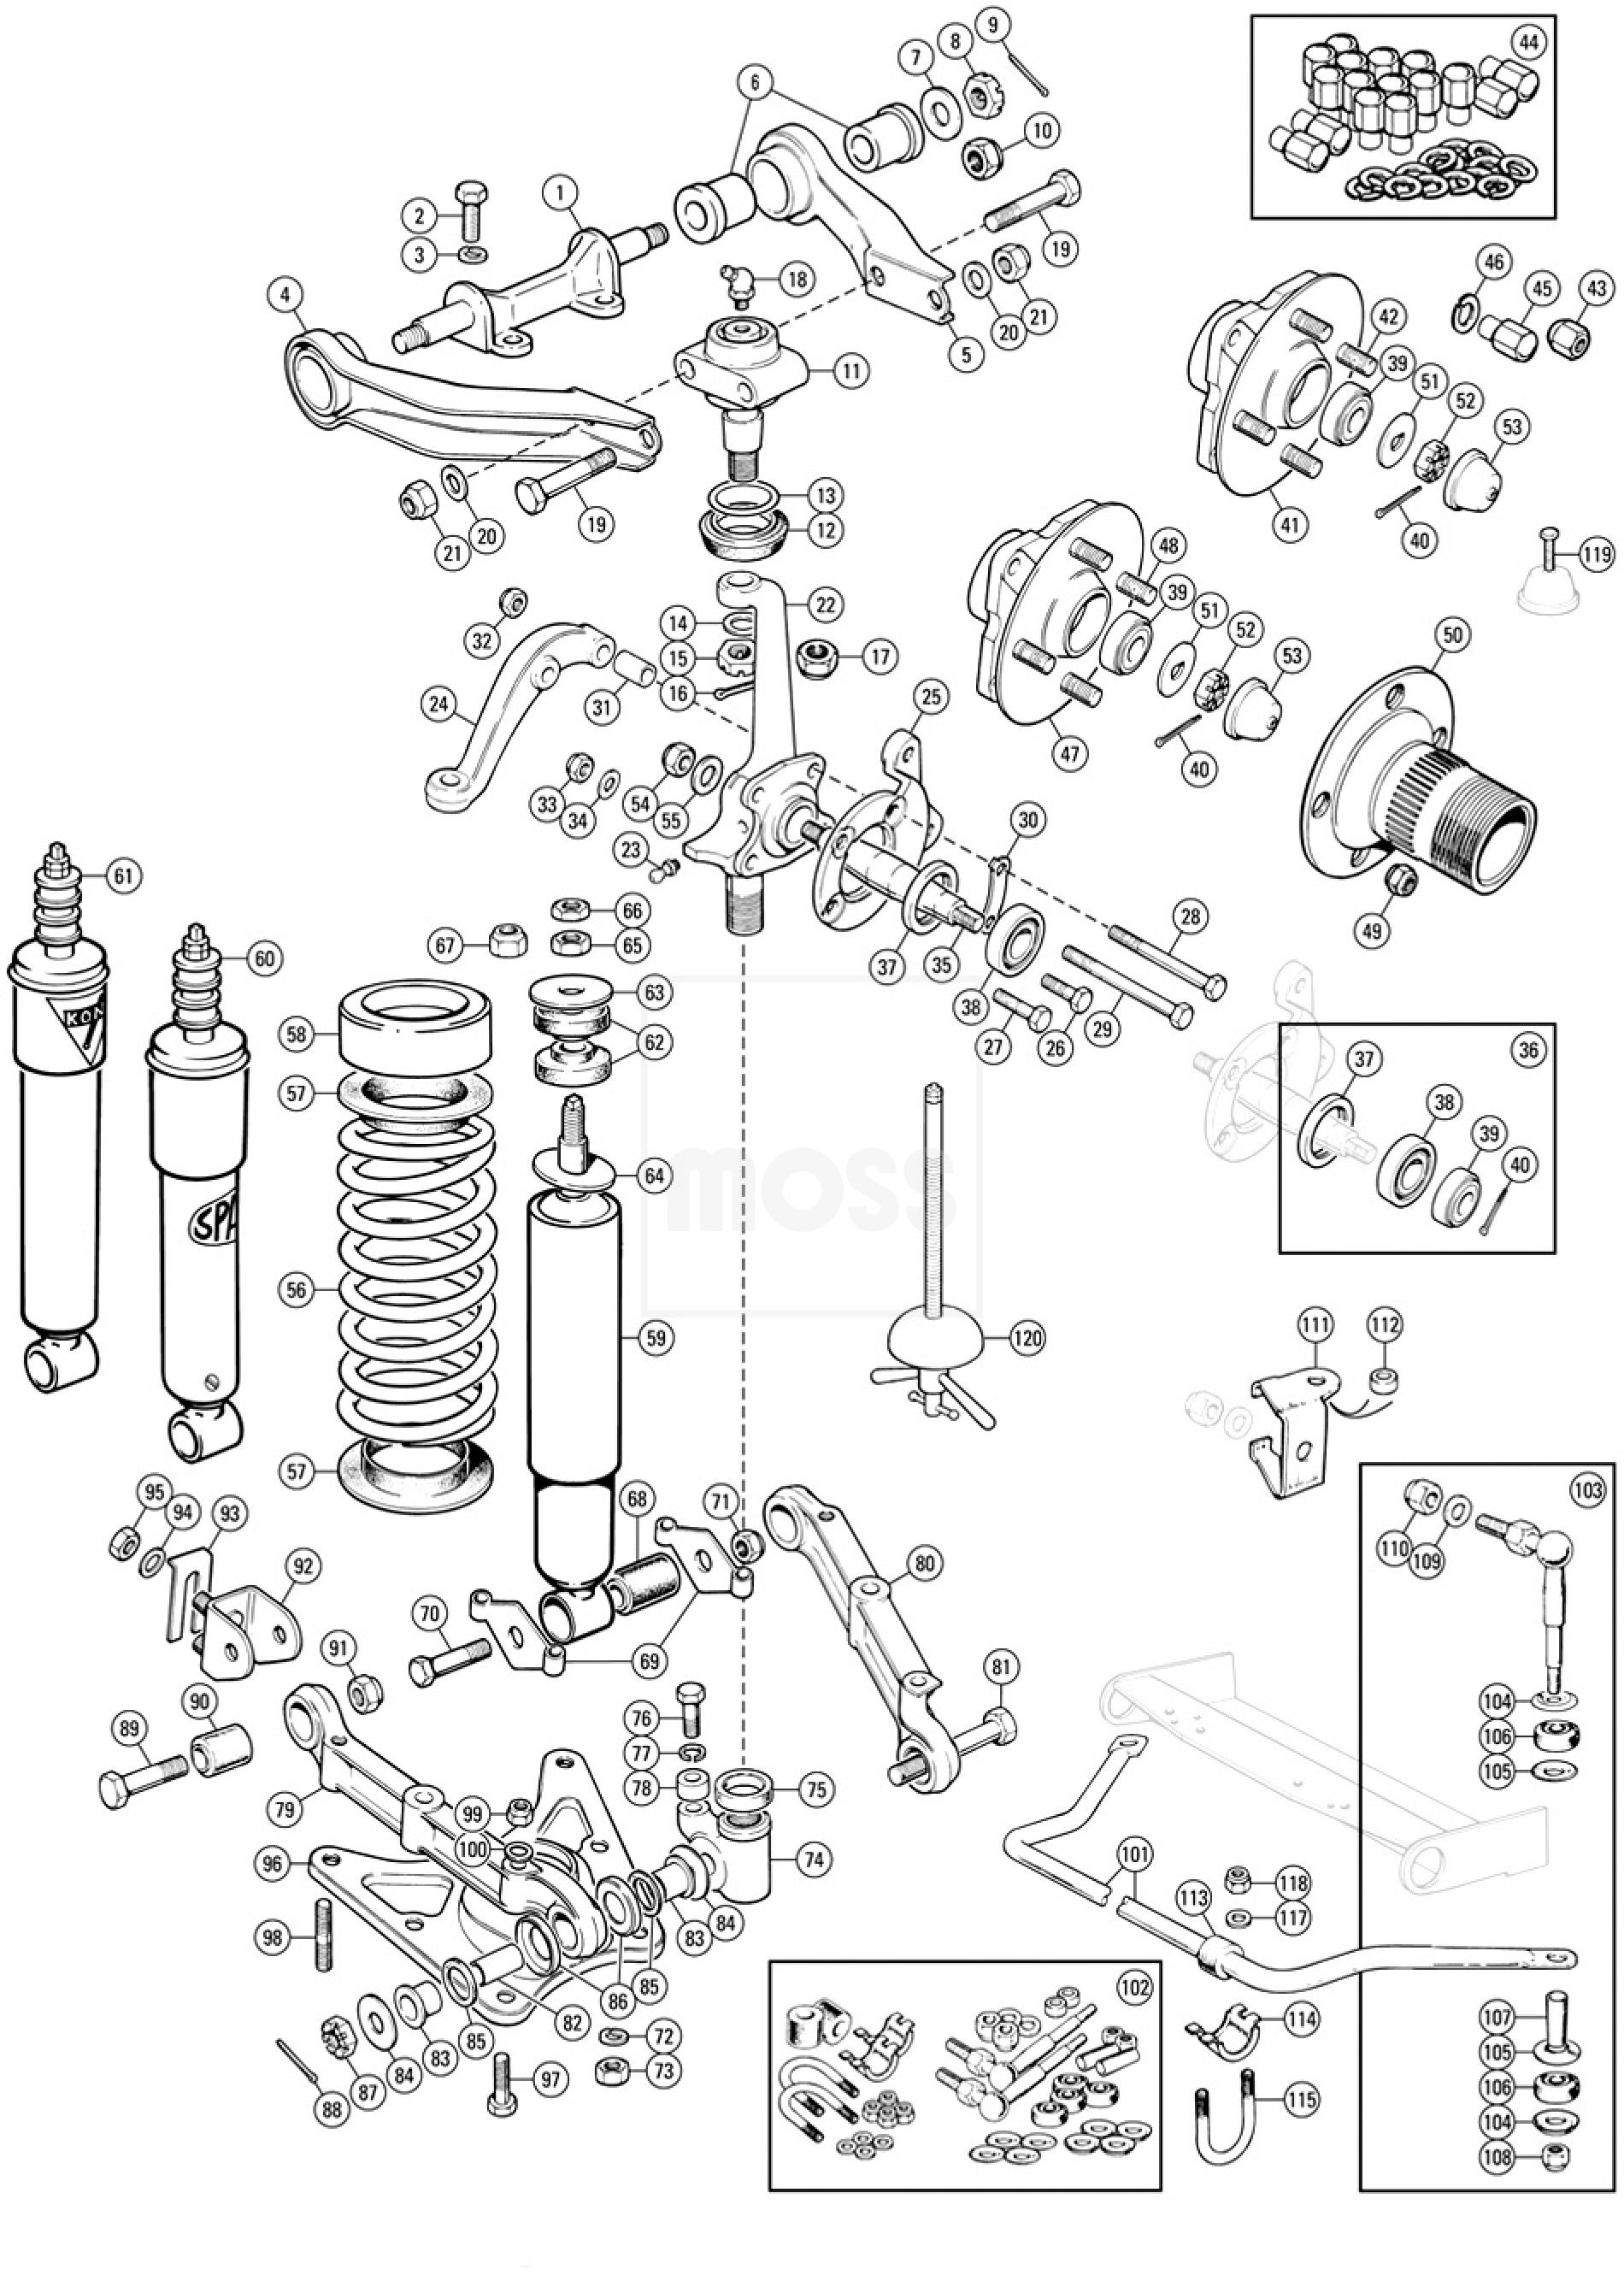 2004 lincoln ls parts catalog